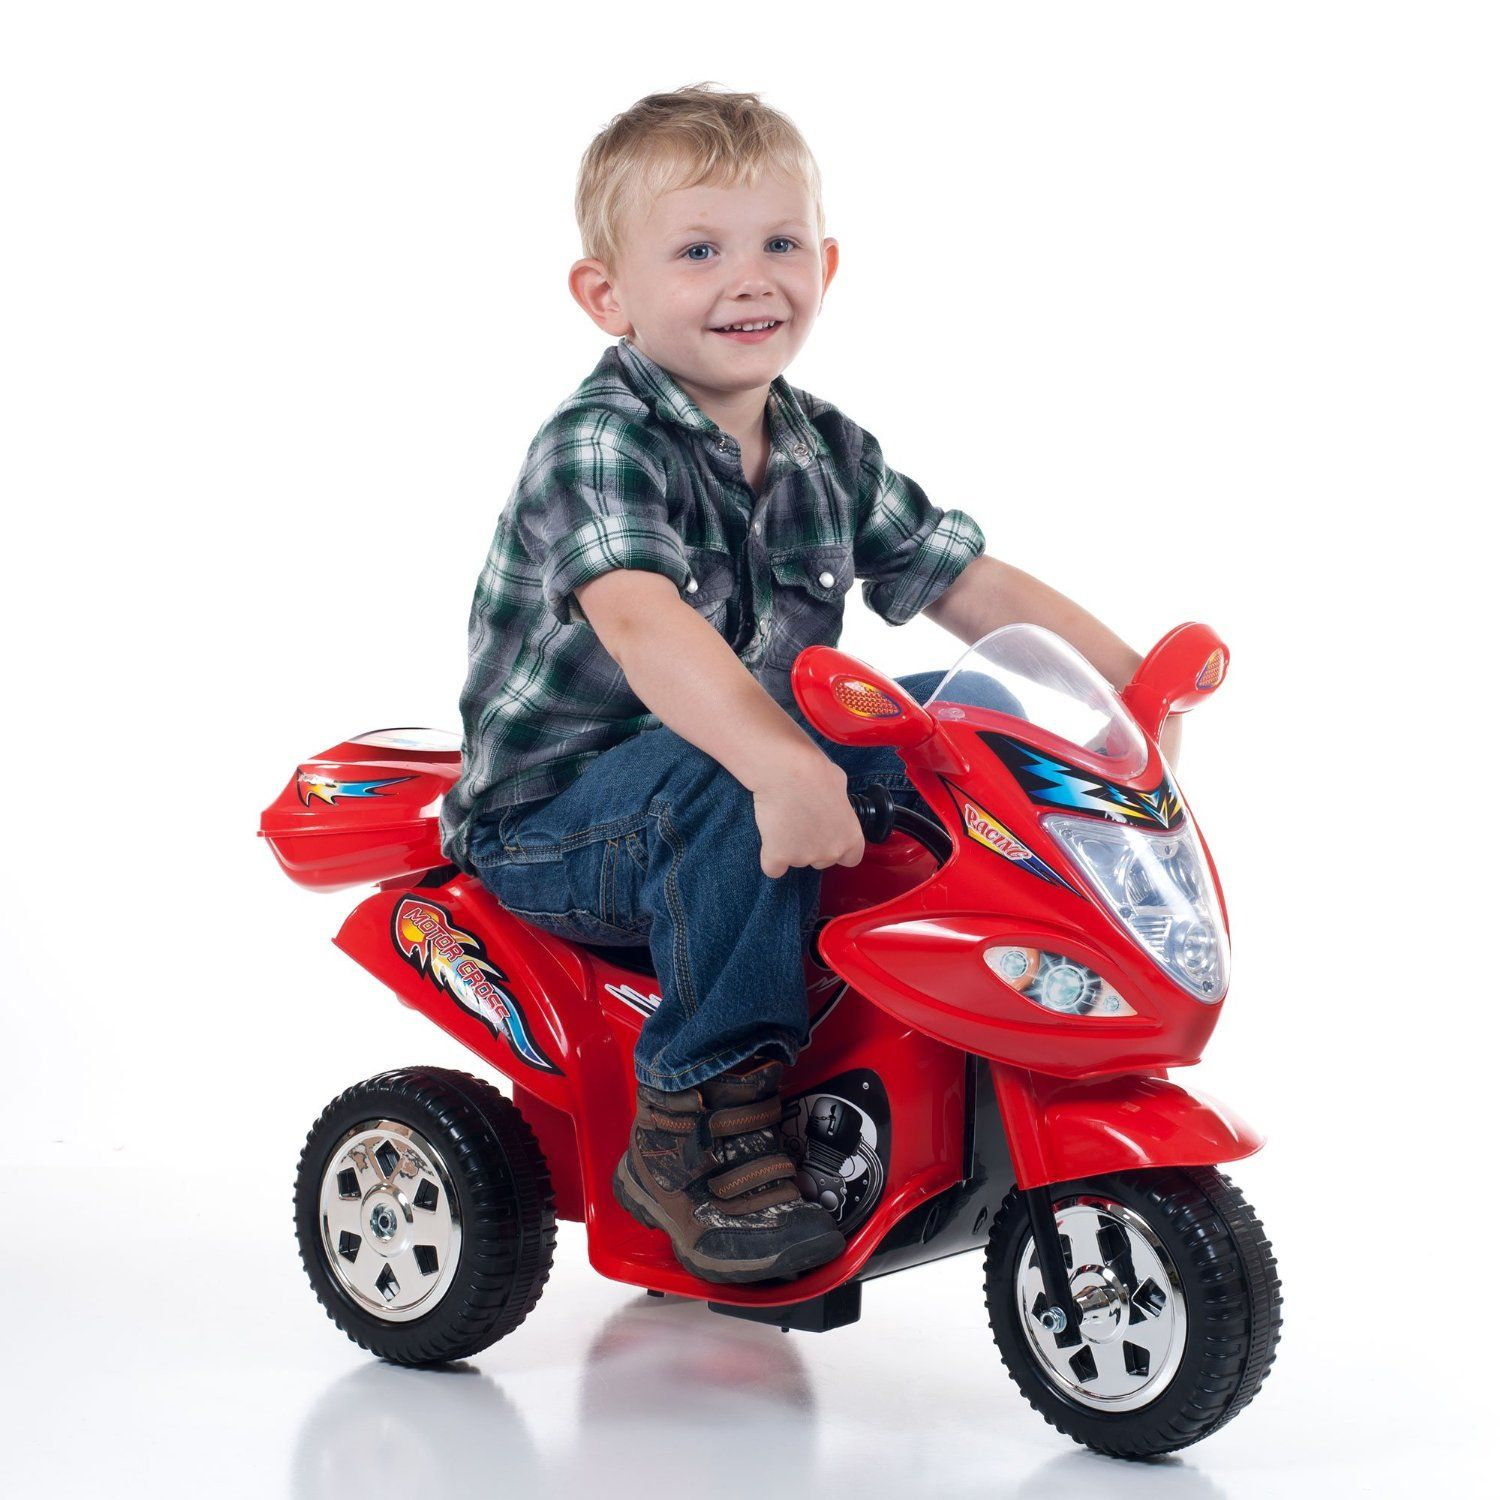 Lil Rider Red Baron Motorized Ride on Three Wheel Motorcycle